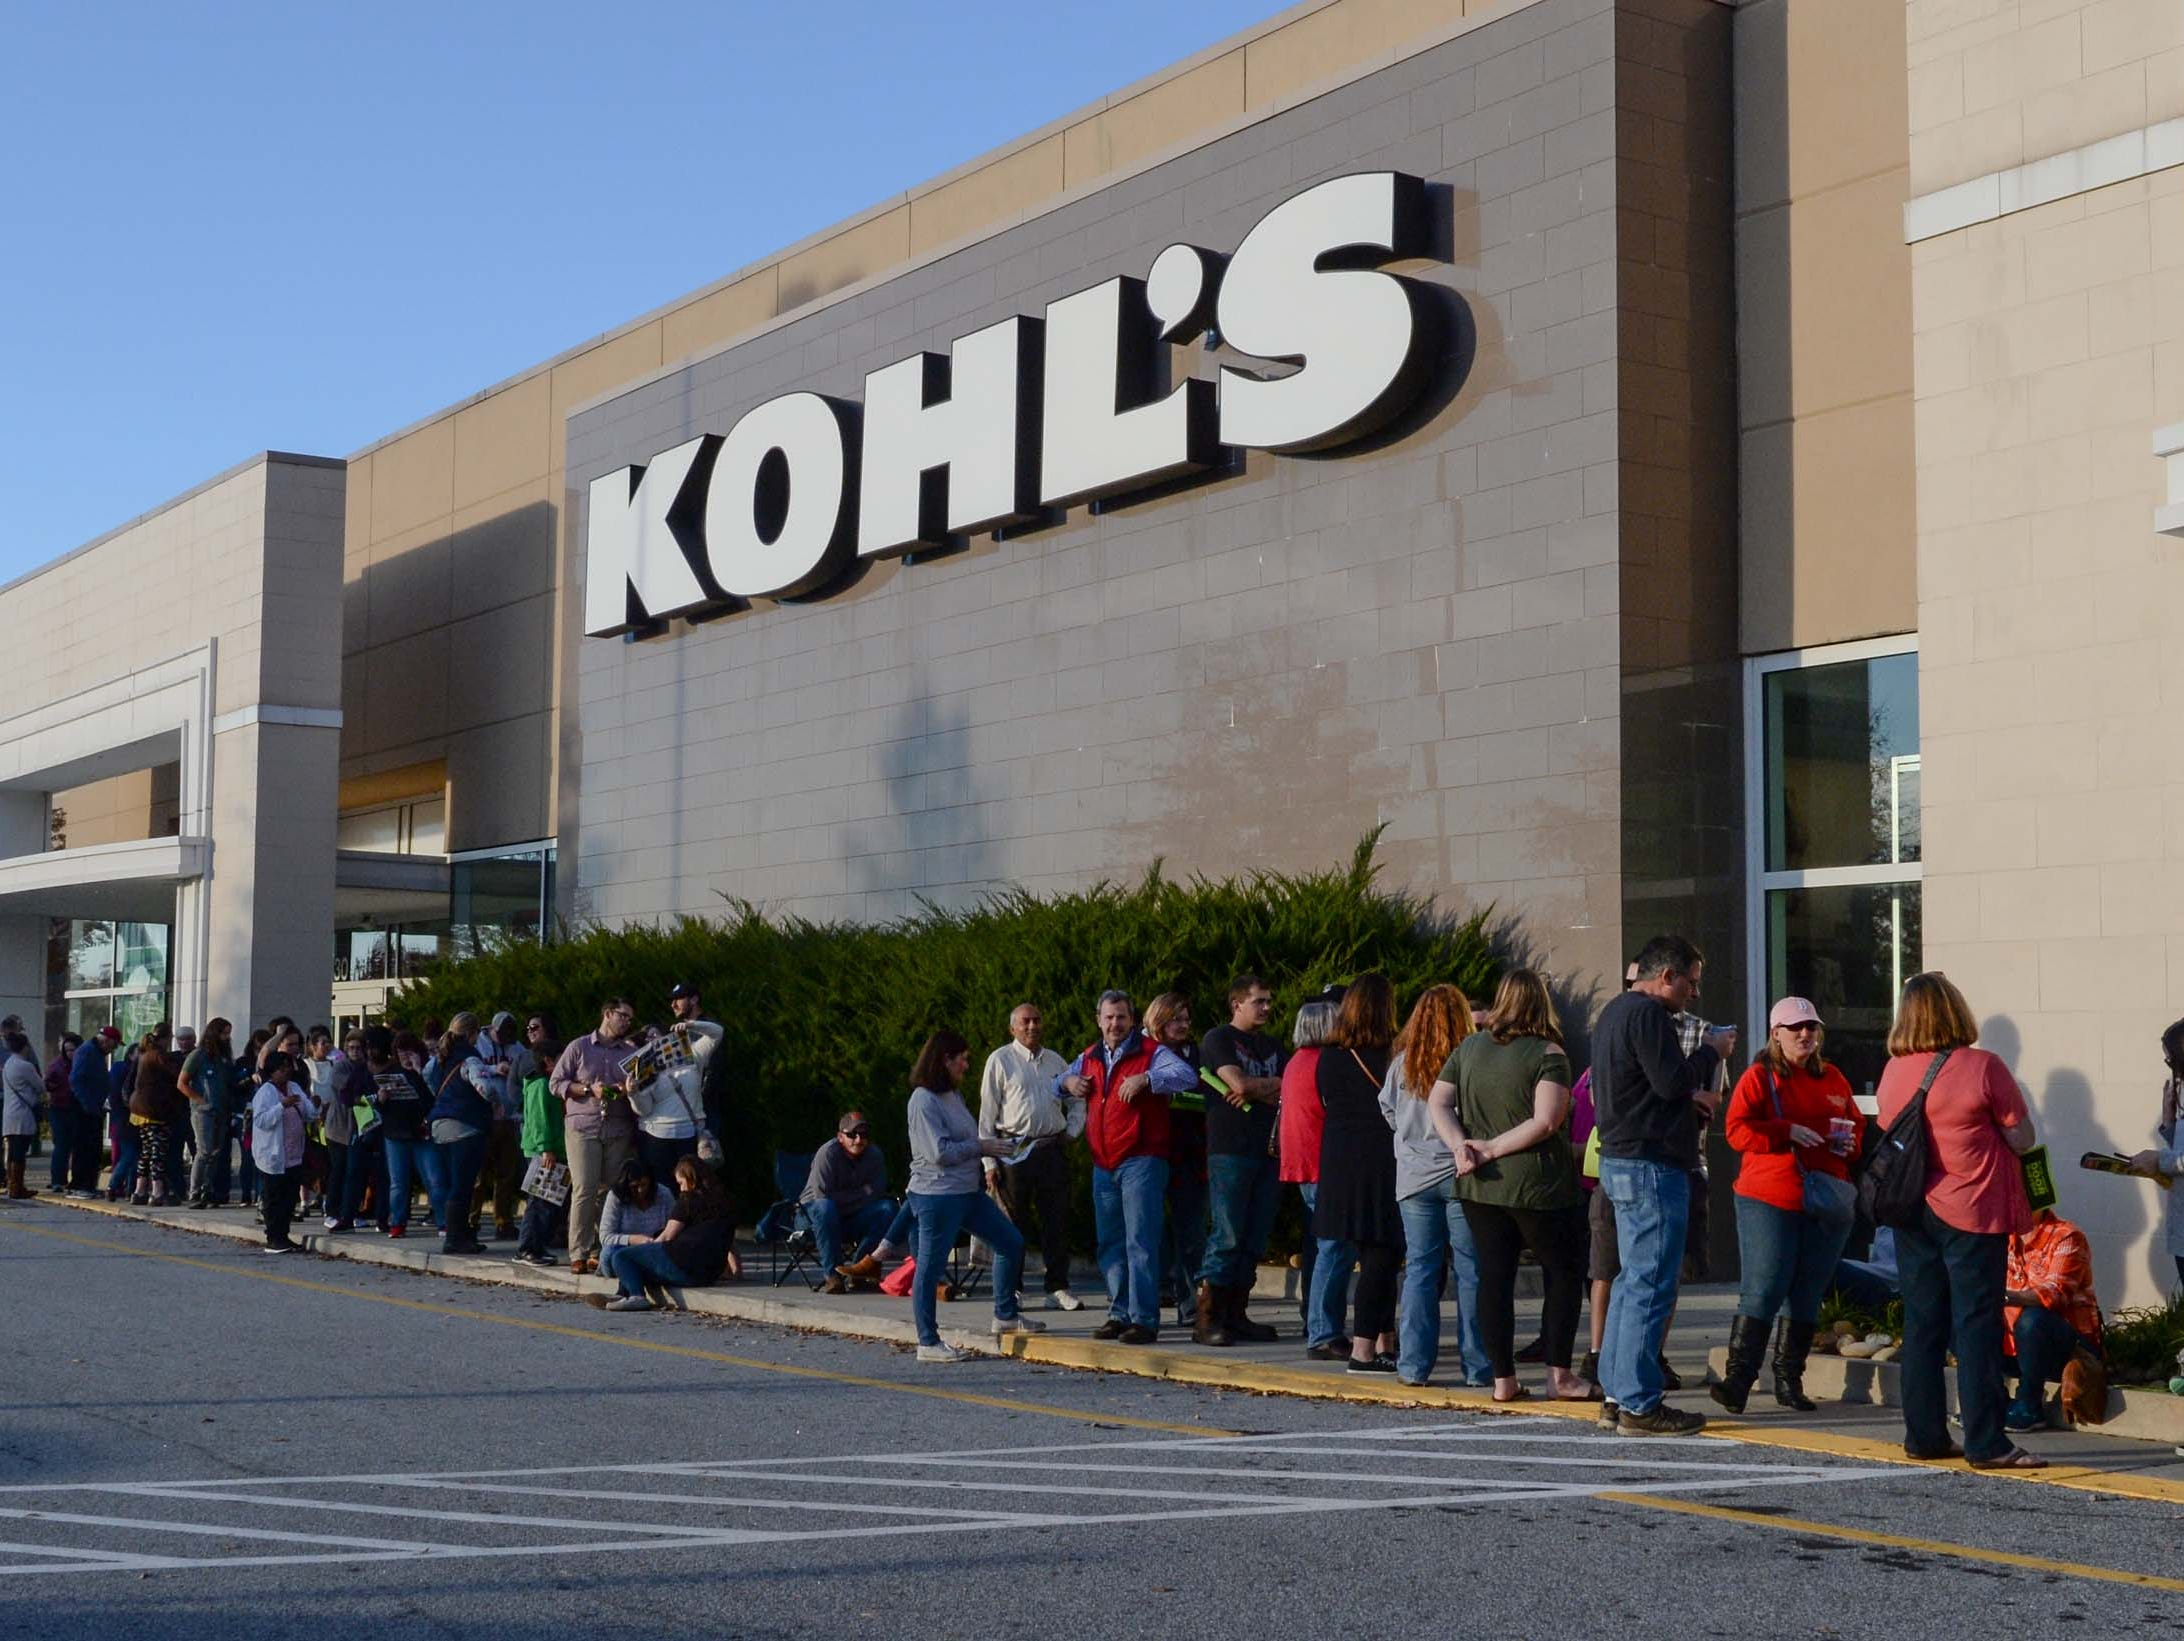 Nearly 250 people lined up before the doors opened at 5 p.m. for Black Friday sales at Kohl's in Anderson on Thanksgiving Day, Thursday, November 22, 2018.